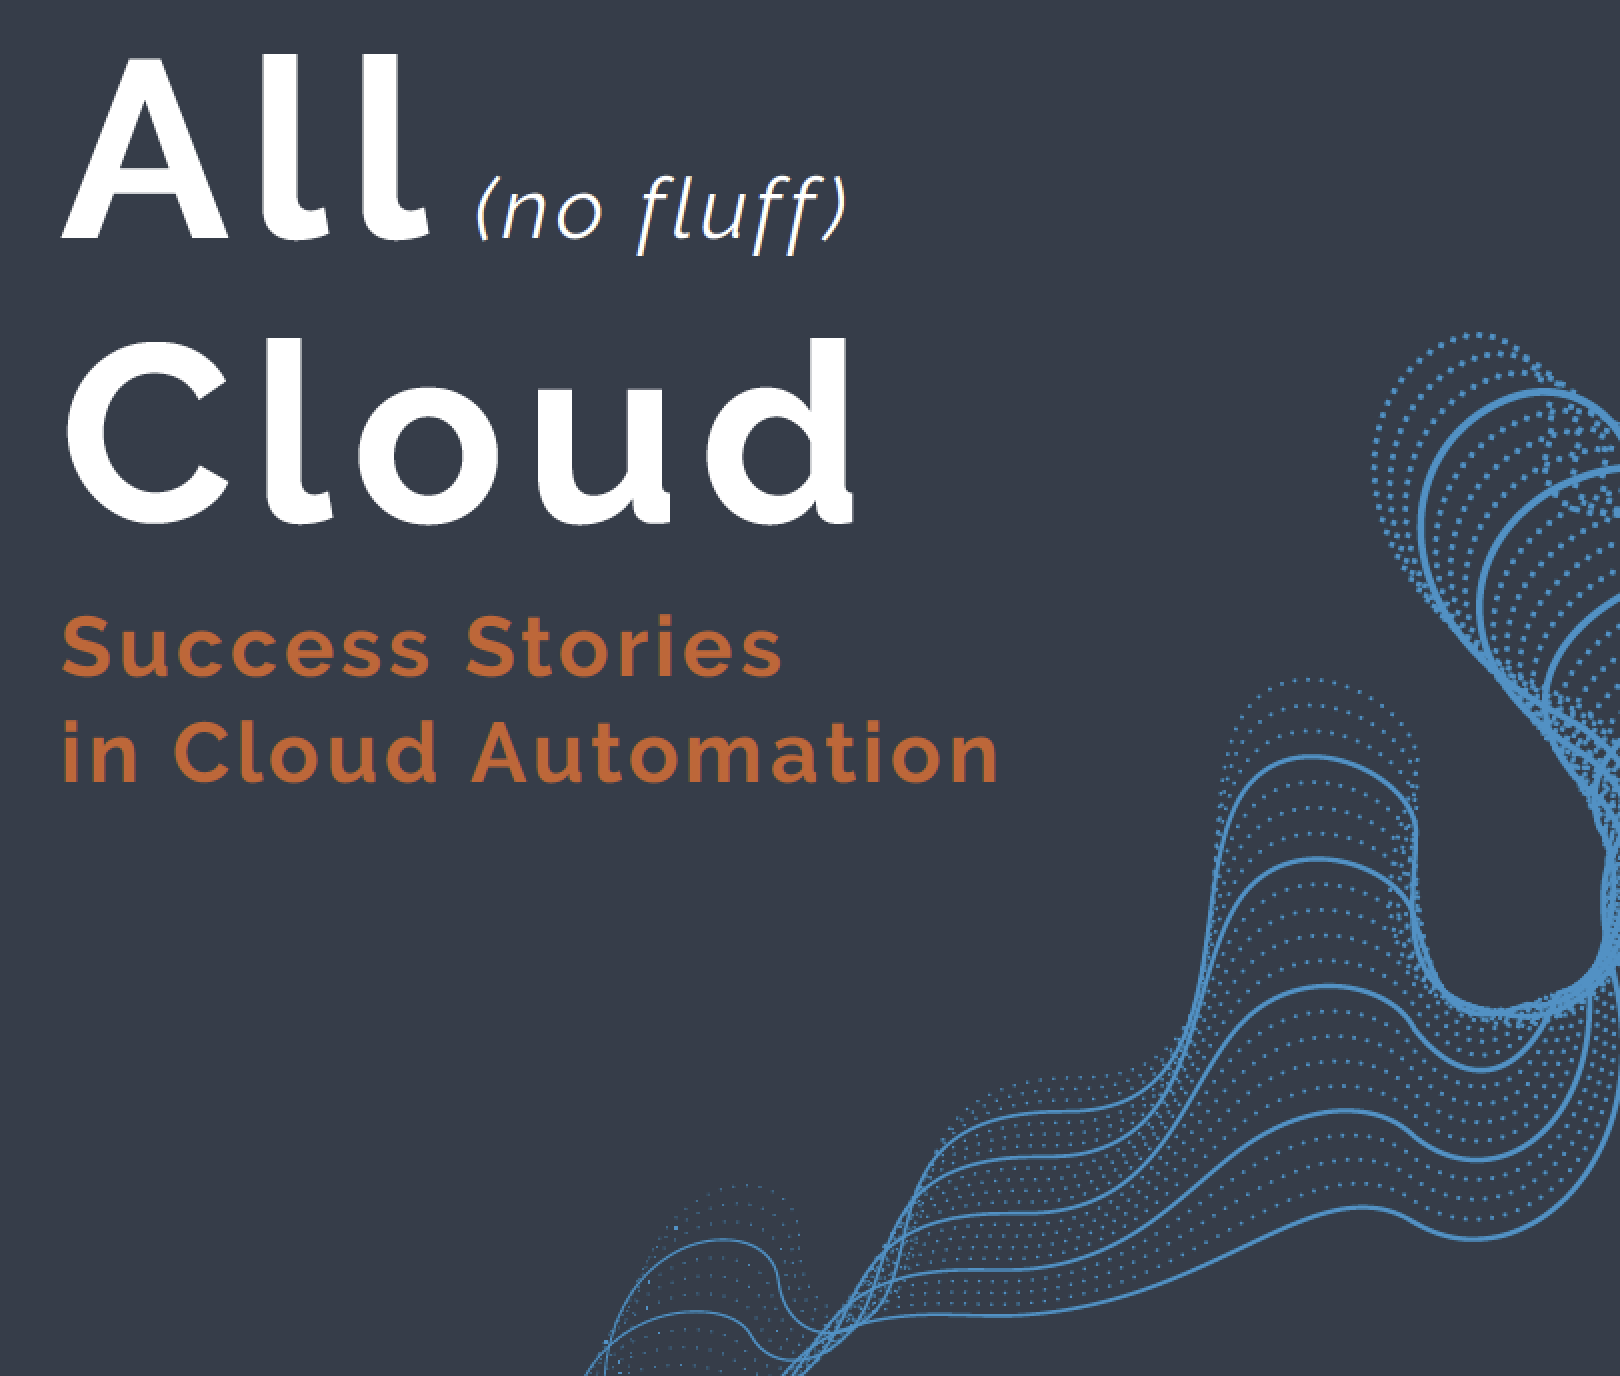 All Cloud - Case Study and Success Stories in Cloud Automation